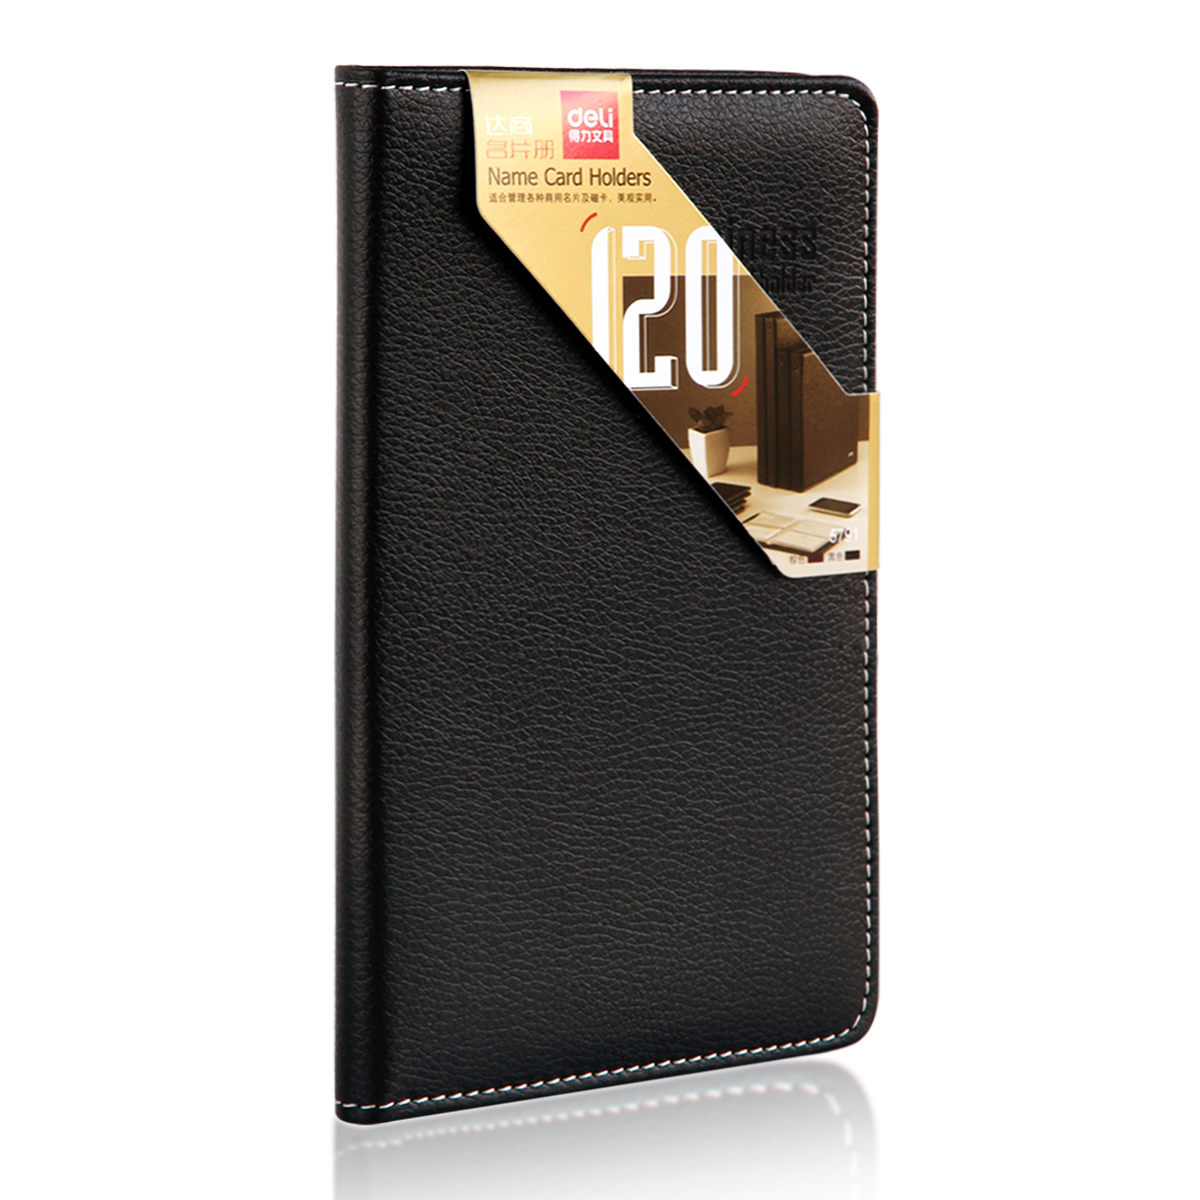 Deli 5791 hardcover 120 business card book business card holder leather business card book binder large capacity card book shipping